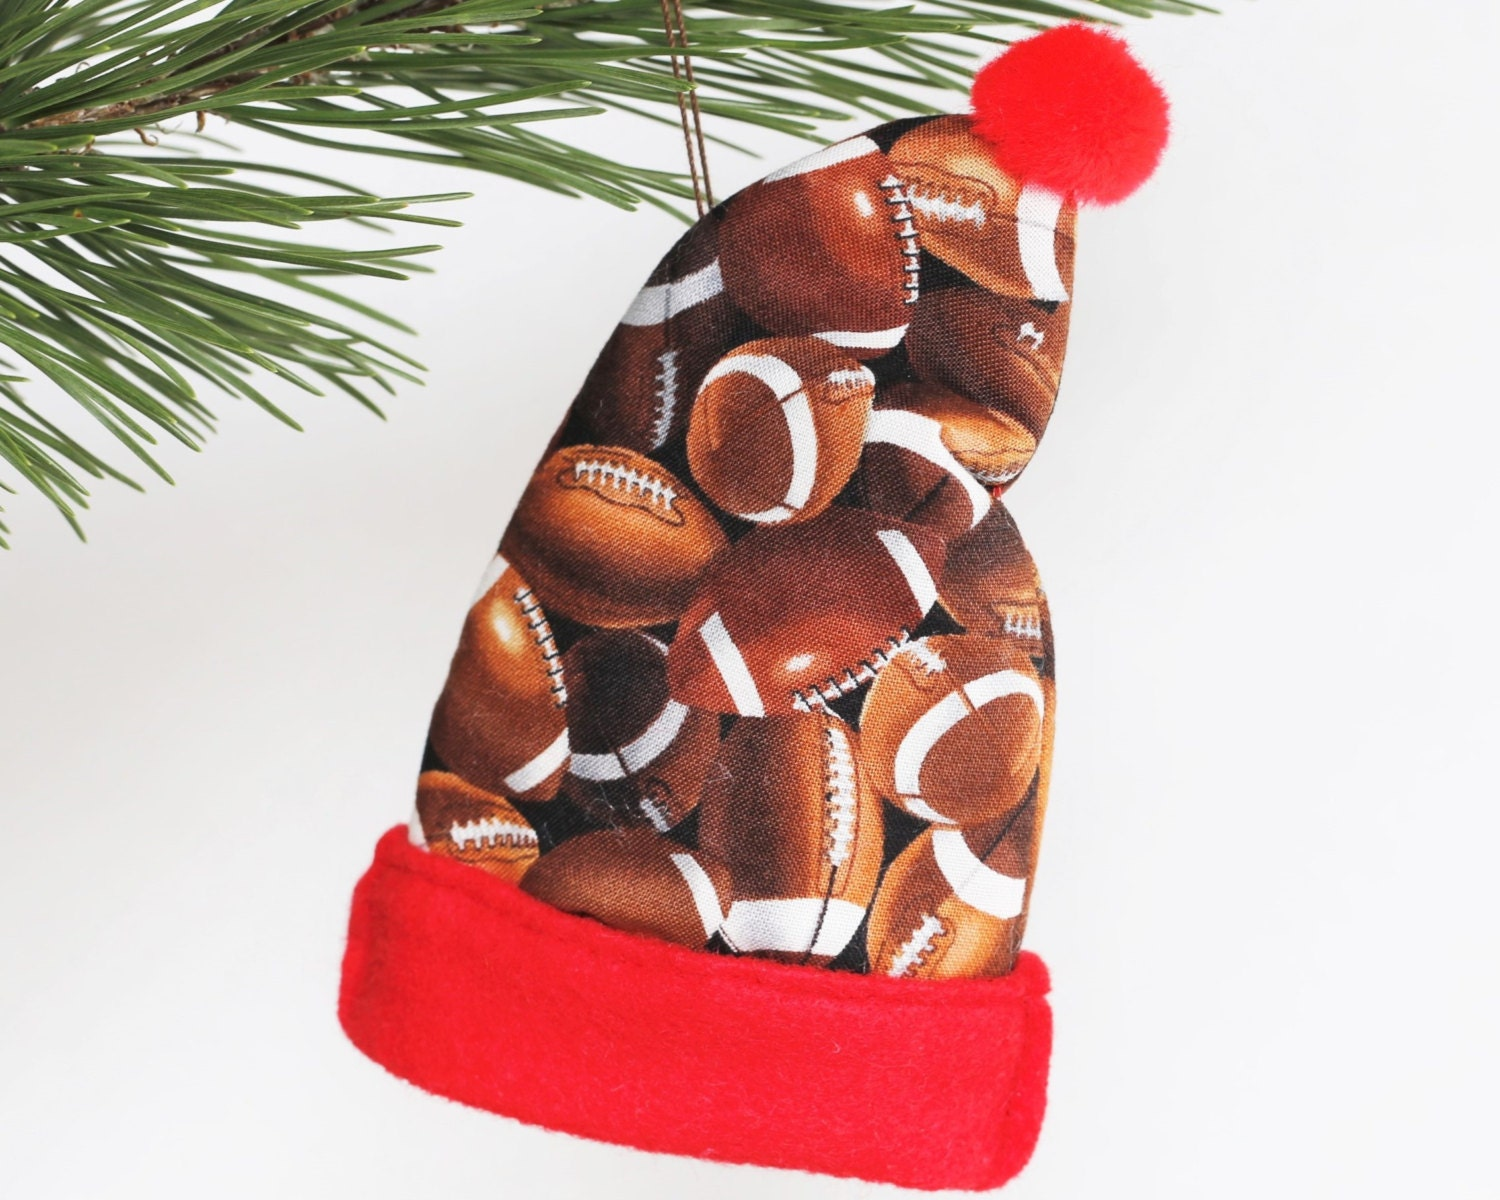 Football player ornament - Football Ornament Personalized Football Coach Gift Football Christmas Ornament Football Christmas Decoration Football Player Christmas Gifts